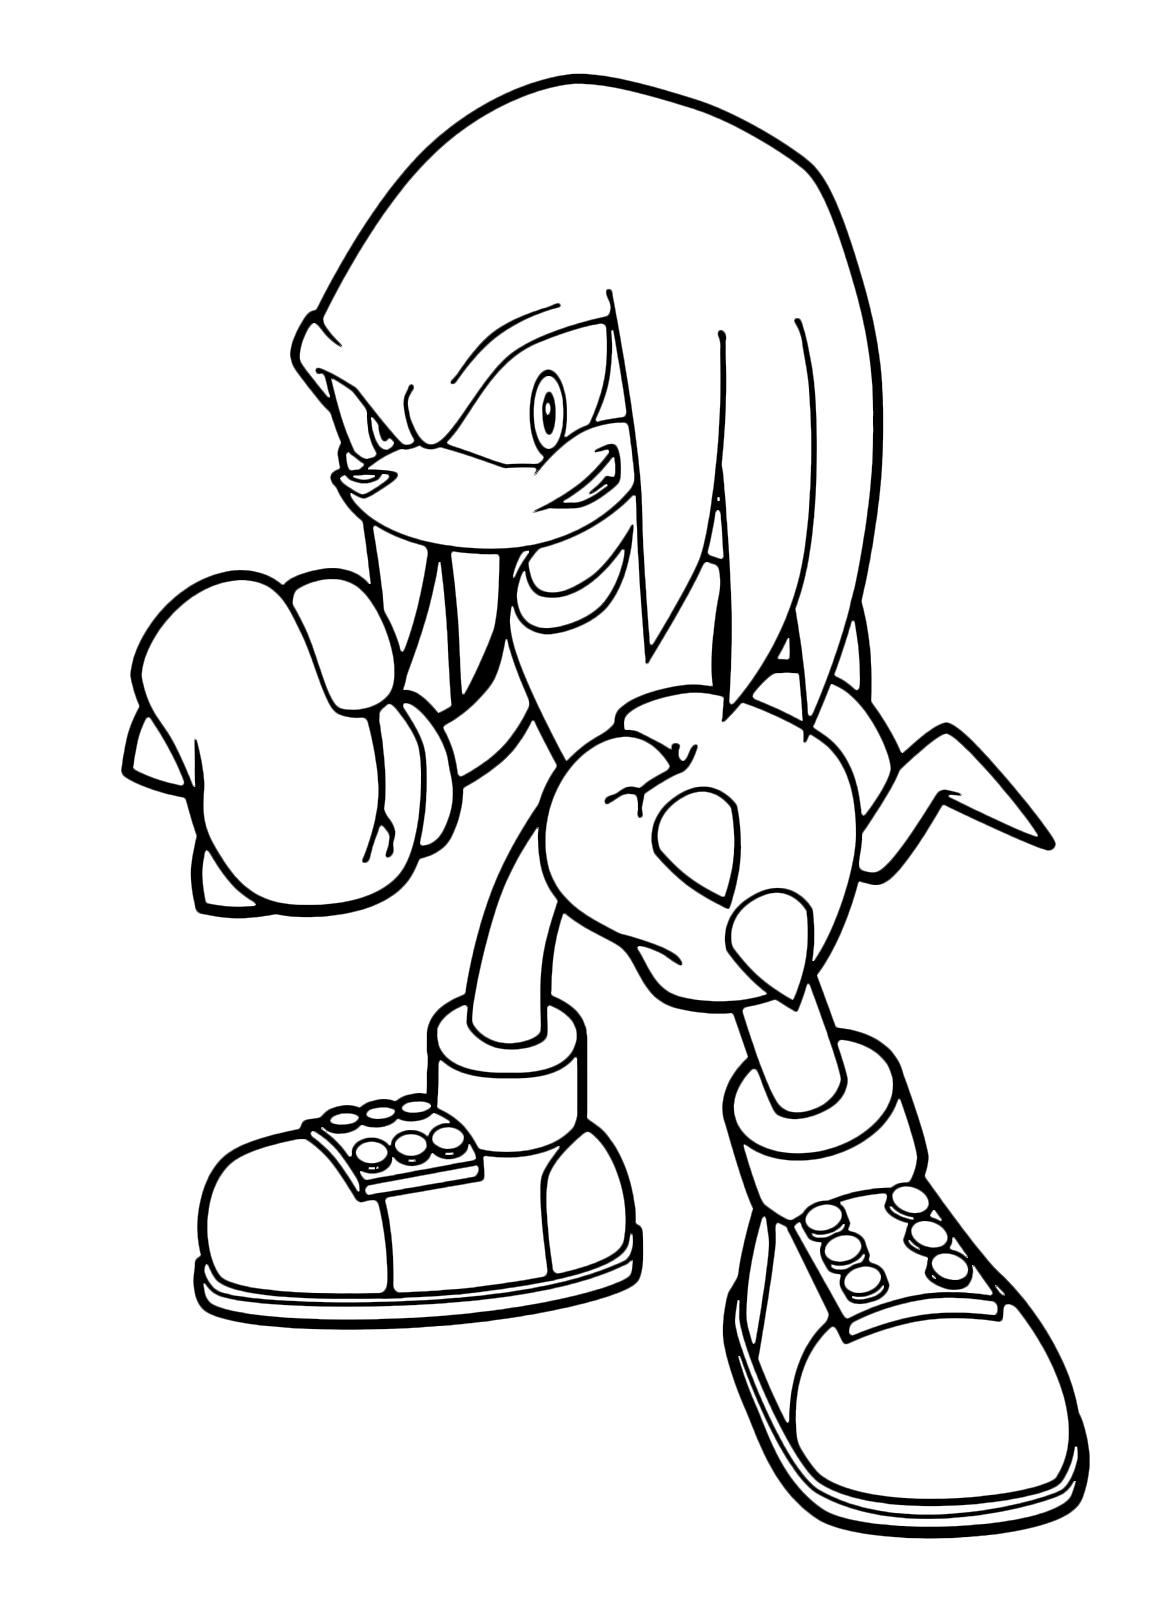 knuckles coloring pages sonic boom knuckles the echidna with his thorny fists coloring knuckles pages